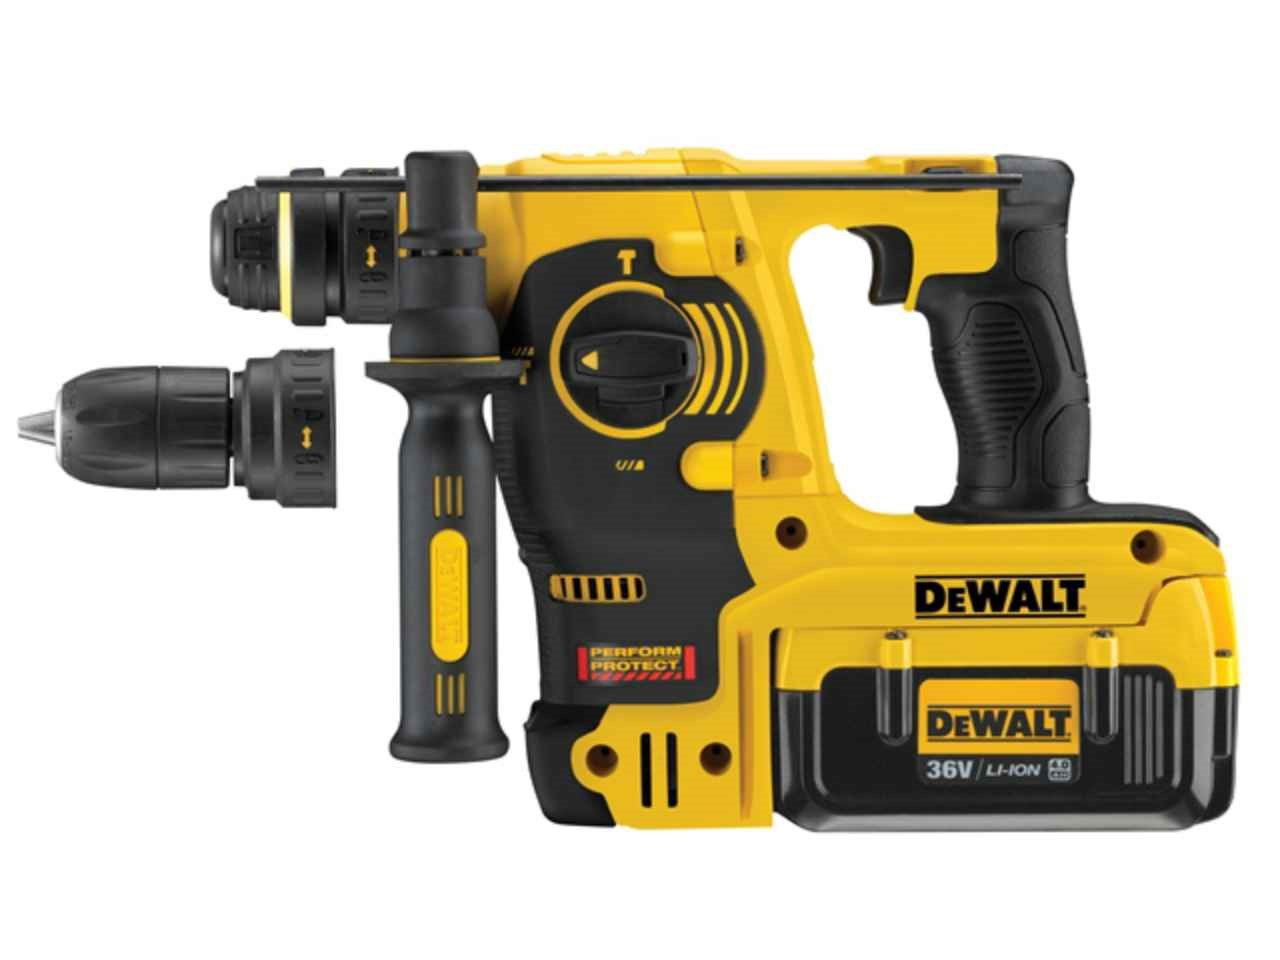 dewalt dch364m2 36v quick change sds hammer drill kit 2 x. Black Bedroom Furniture Sets. Home Design Ideas